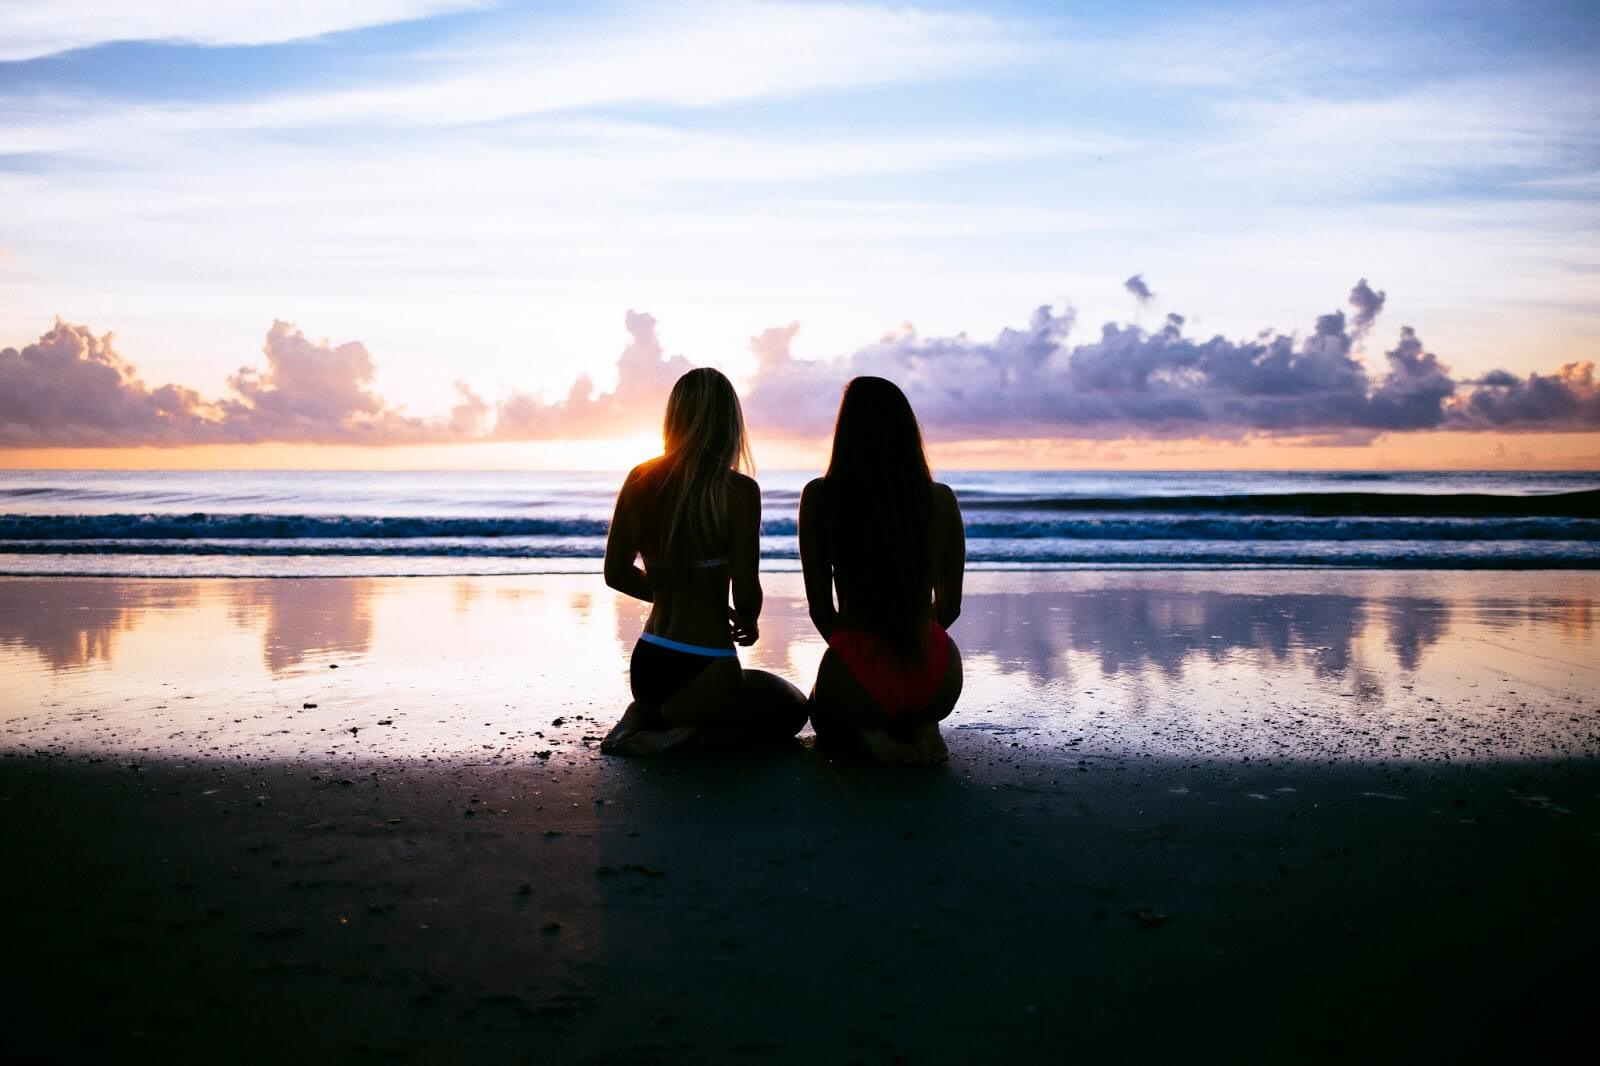 What to expect in a relationship - two women sat on a beach looking at the reflection of clouds in the water